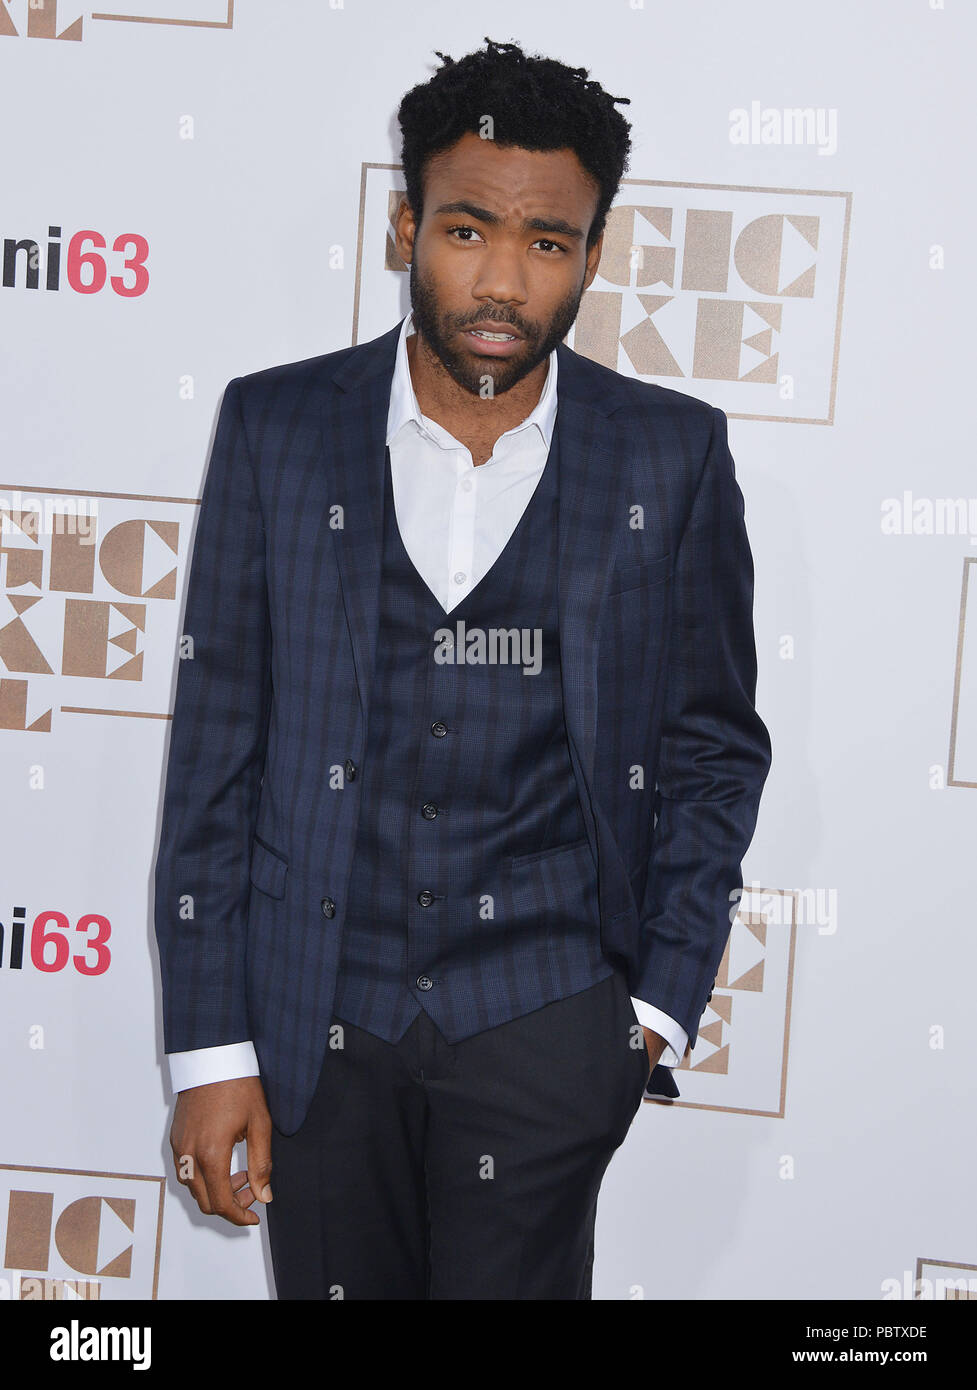 Donald Glover  at the Magic Mike XXL premiere at the TCL Chinese Theatre in Los Angeles. June 25, 2015.Donald Glover  ------------- Red Carpet Event, Vertical, USA, Film Industry, Celebrities,  Photography, Bestof, Arts Culture and Entertainment, Topix Celebrities fashion /  Vertical, Best of, Event in Hollywood Life - California,  Red Carpet and backstage, USA, Film Industry, Celebrities,  movie celebrities, TV celebrities, Music celebrities, Photography, Bestof, Arts Culture and Entertainment,  Topix, Three Quarters, vertical, one person,, from the year , 2015, inquiry tsuni@Gamma-USA.com - Stock Image